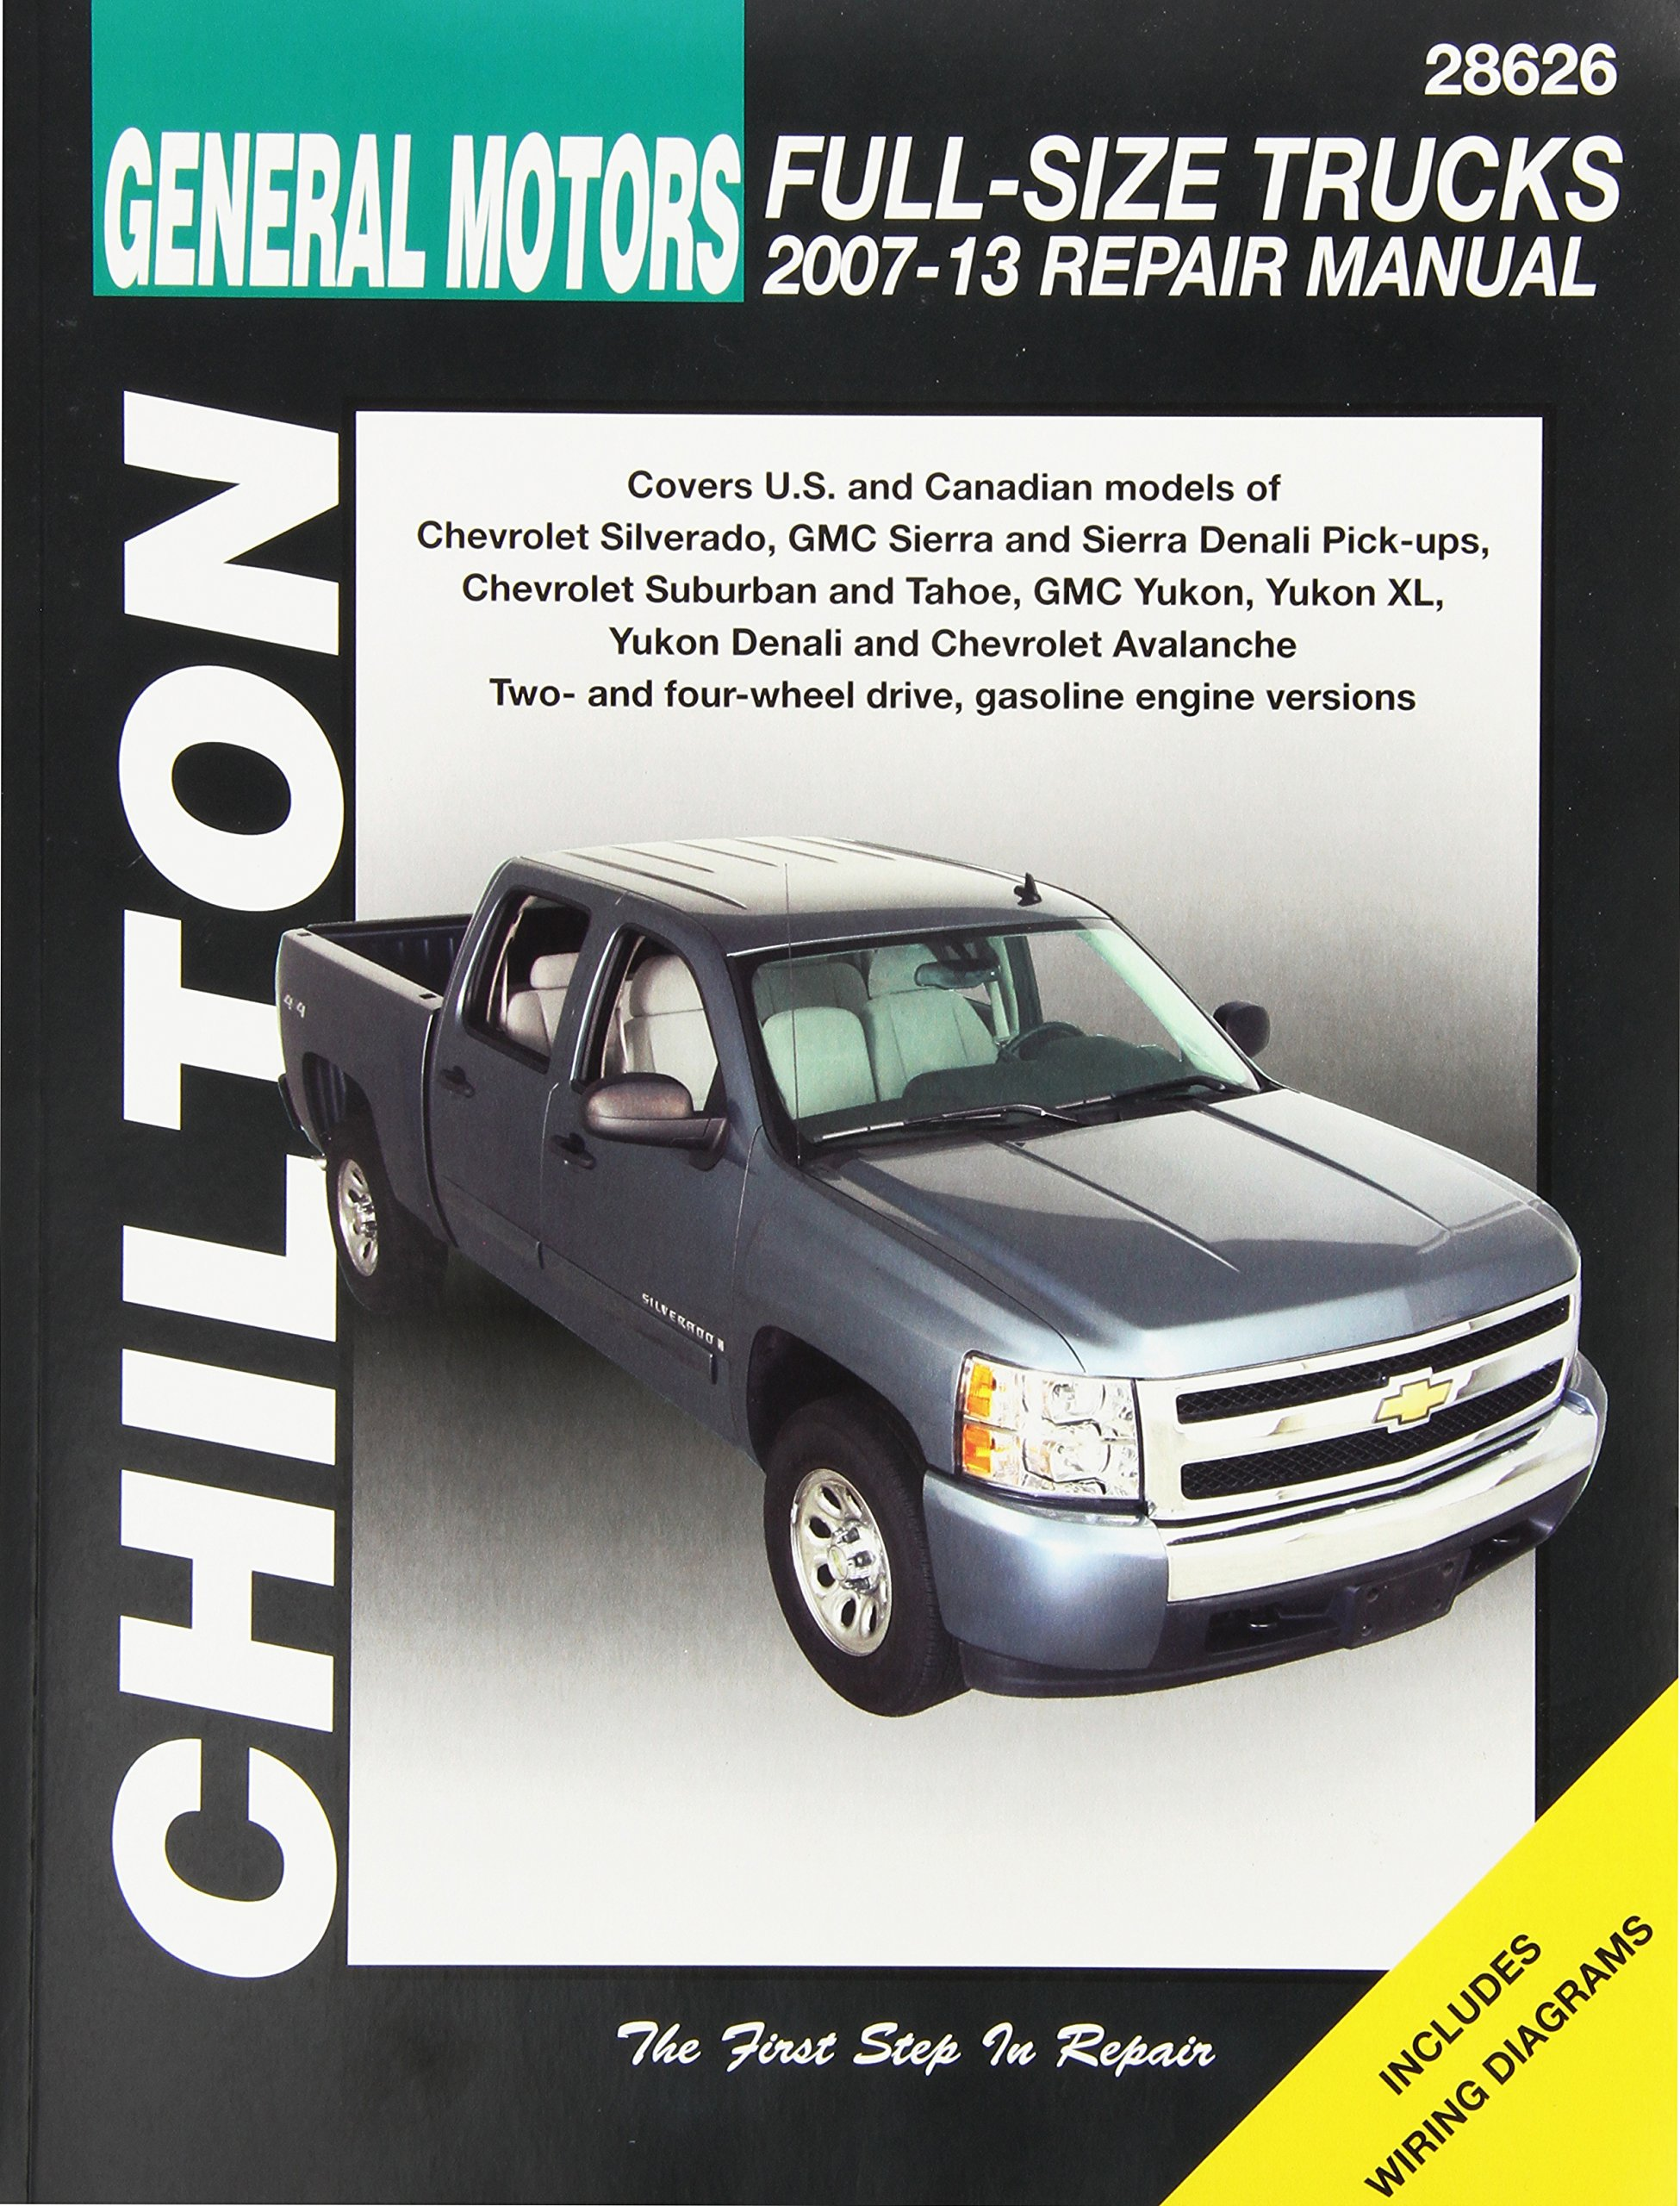 amazon com gm full size trucks chilton repair manual 2007 2012 rh amazon com 2004 gmc sierra 2500 service manual 2004 gmc sierra 2500hd service manual